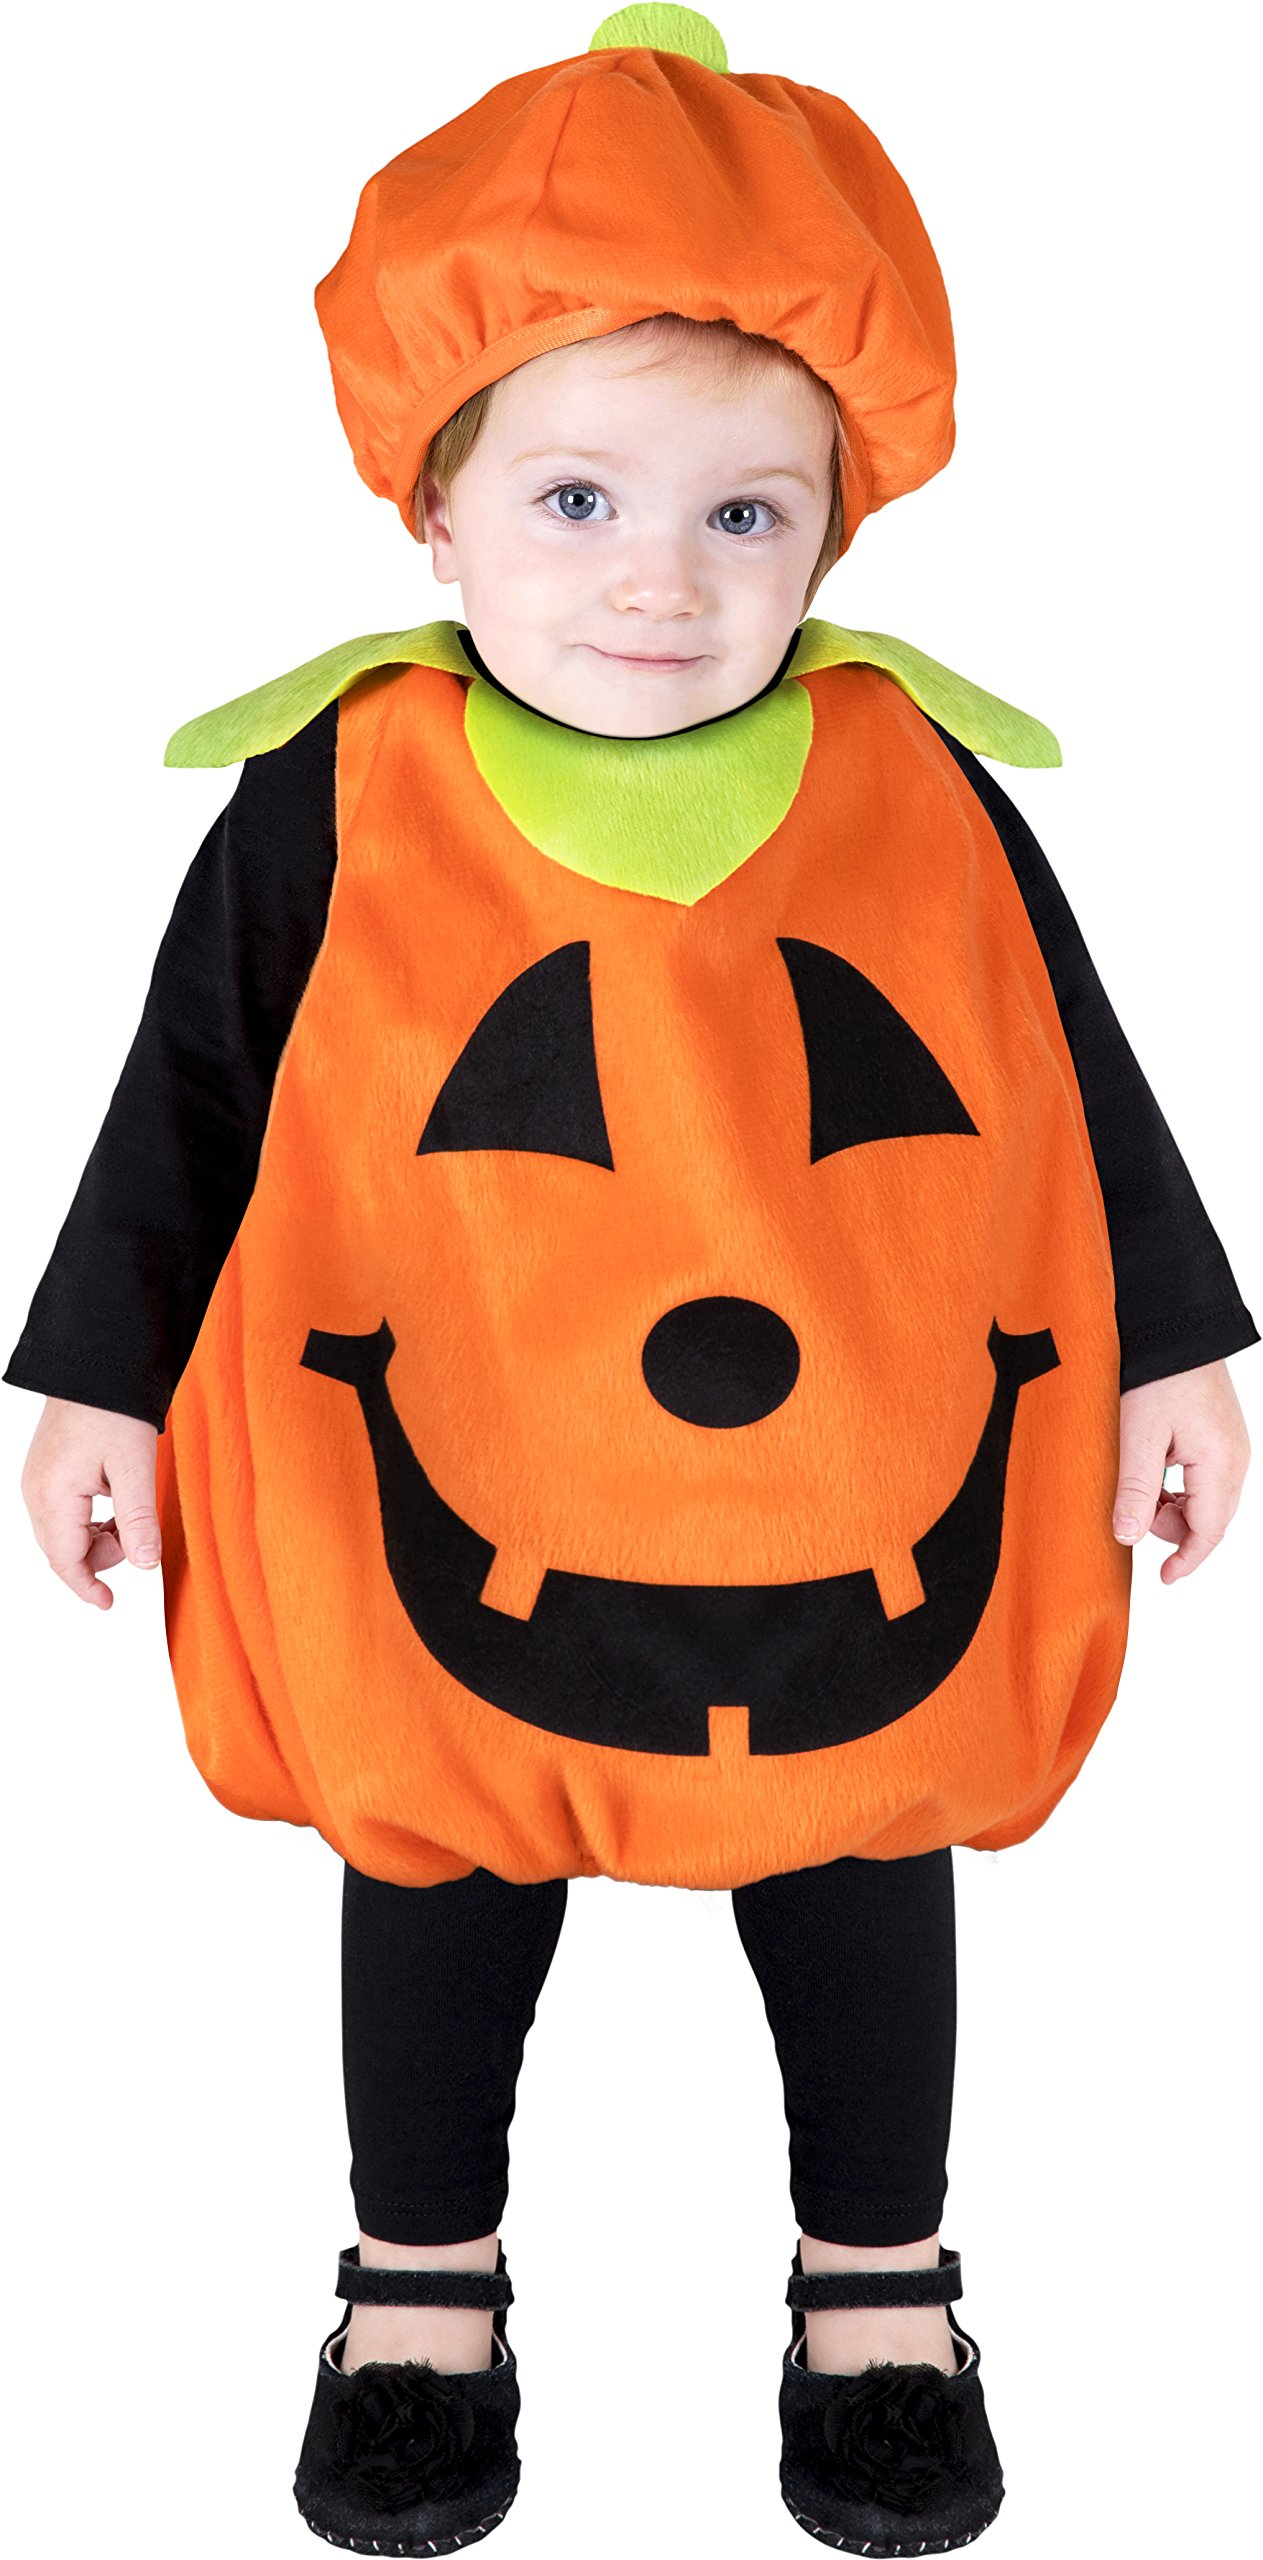 Halloween Costumes - Pumpkin Plush Costume Infant/Toddler Orange u0026 Black (one size up  sc 1 st  Amazon.com & Amazon.com: Fun World Plump Pumpkin Toddler Costume Multicolor ...